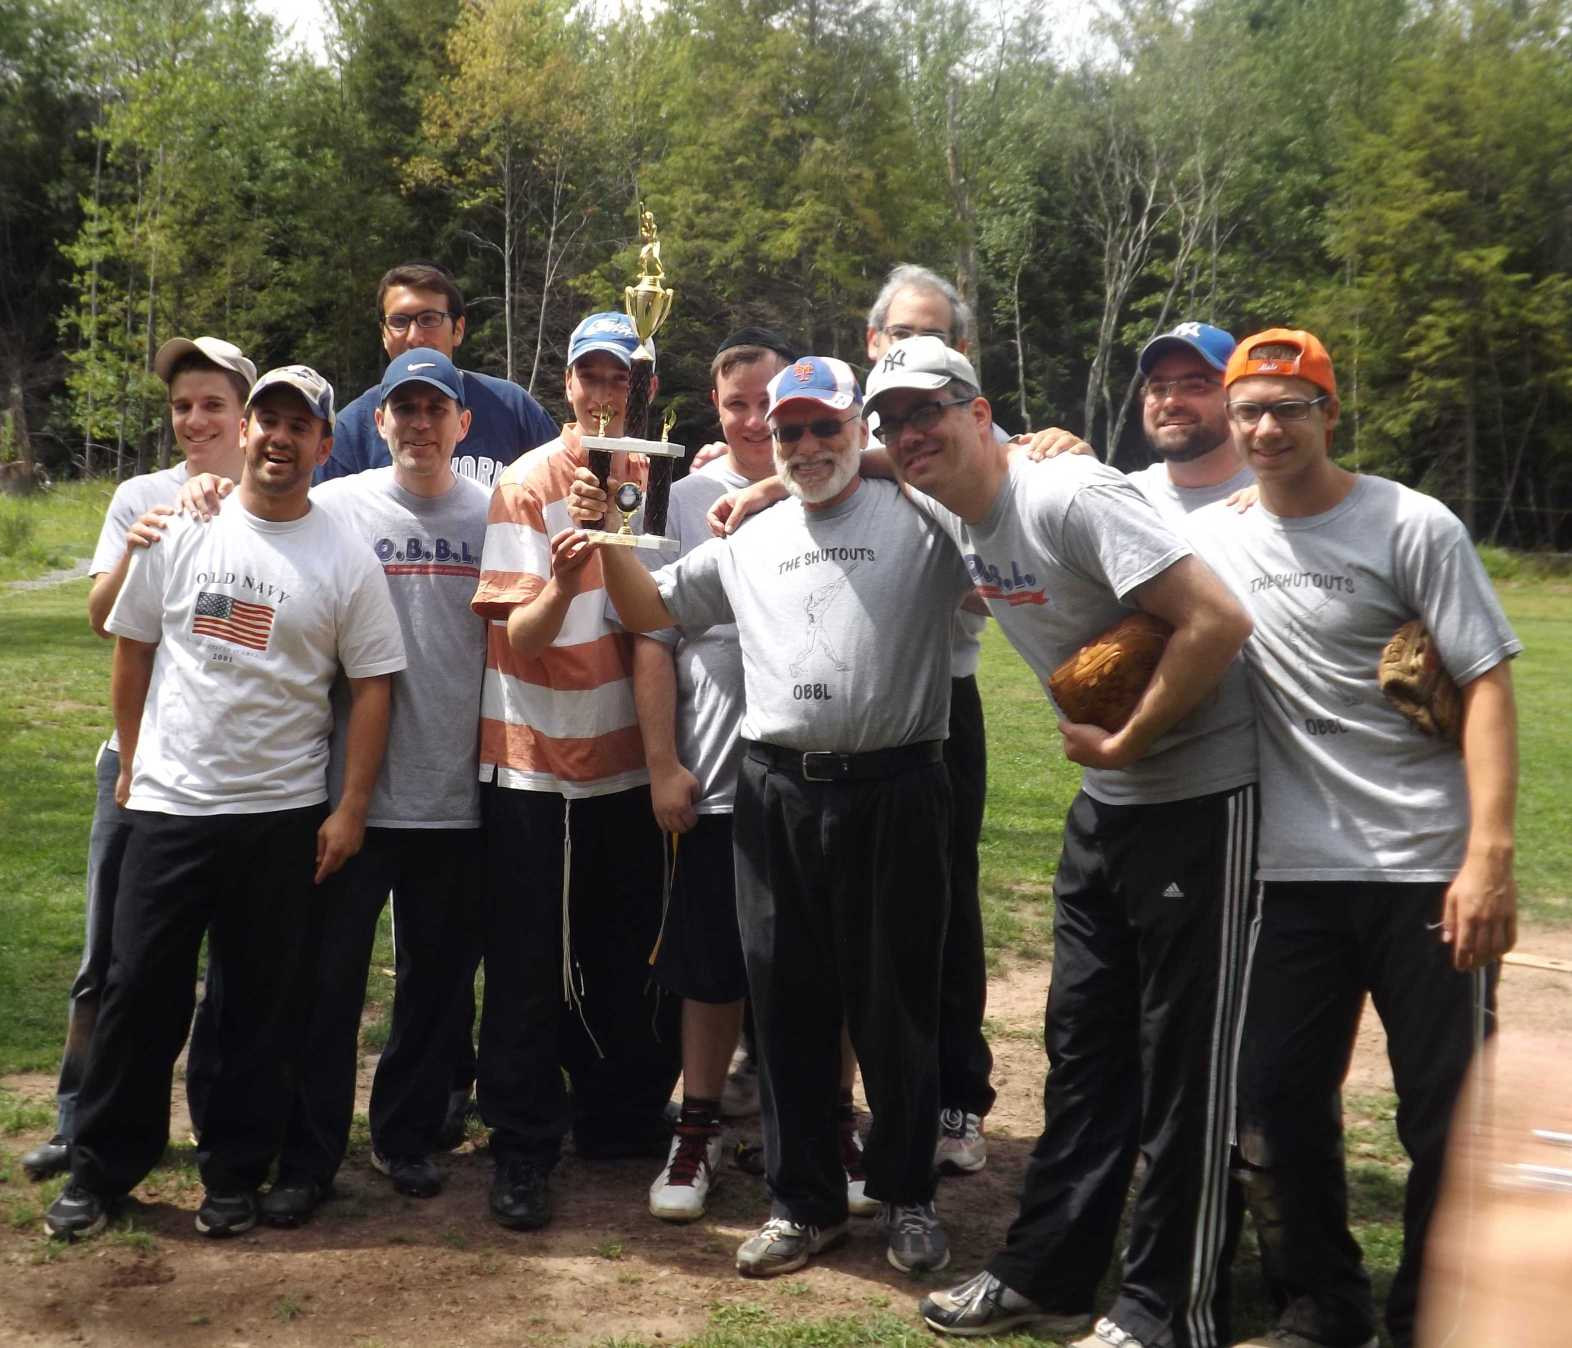 The Shutouts - 2012 Eastern Division Champs